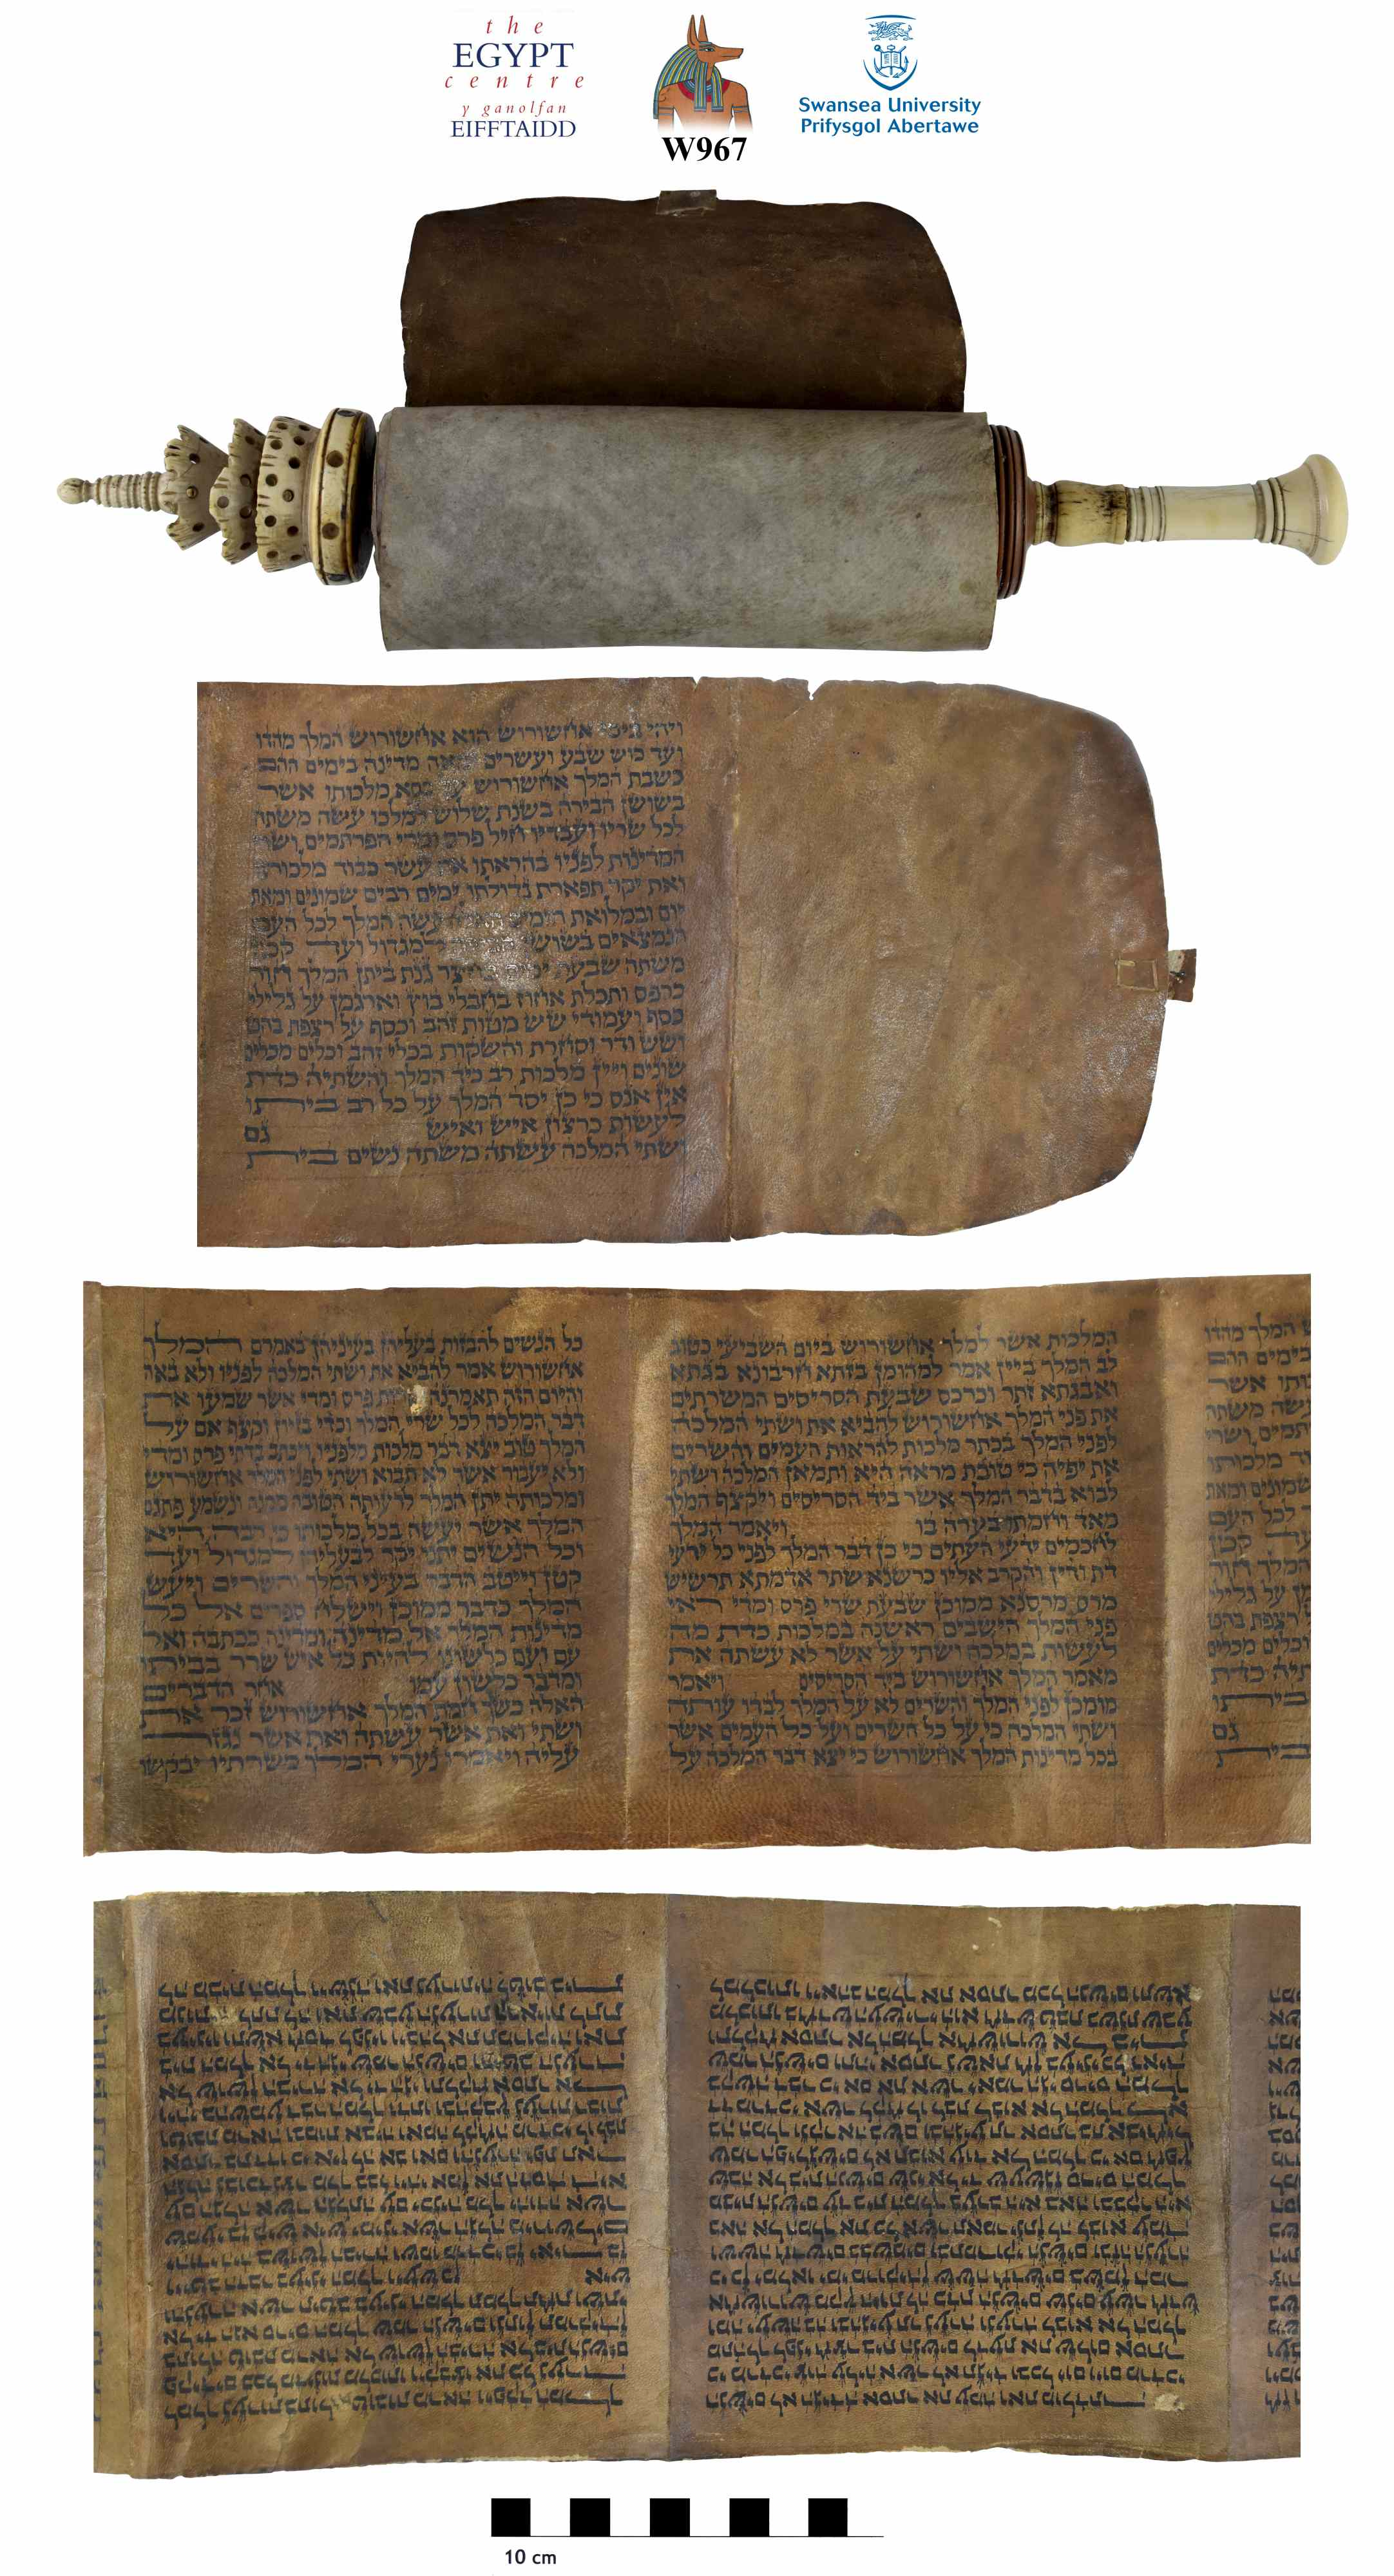 Image for: Parchment scroll